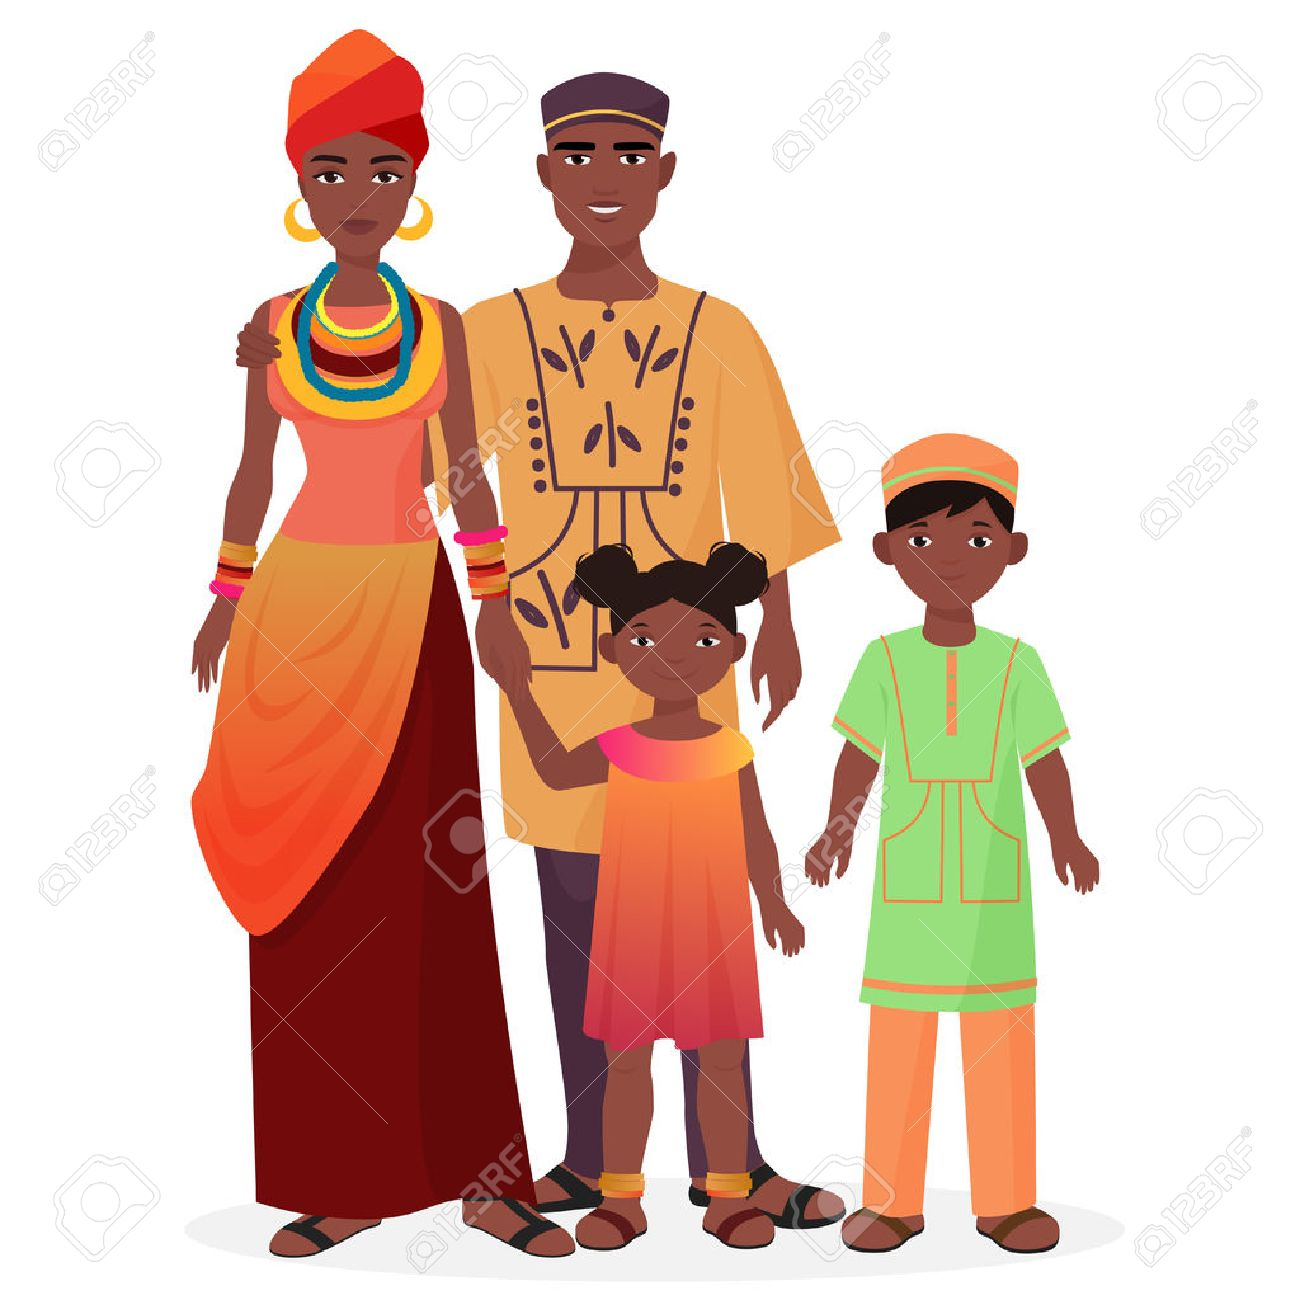 hight resolution of 112 african american family fun cliparts stock vector and royalty